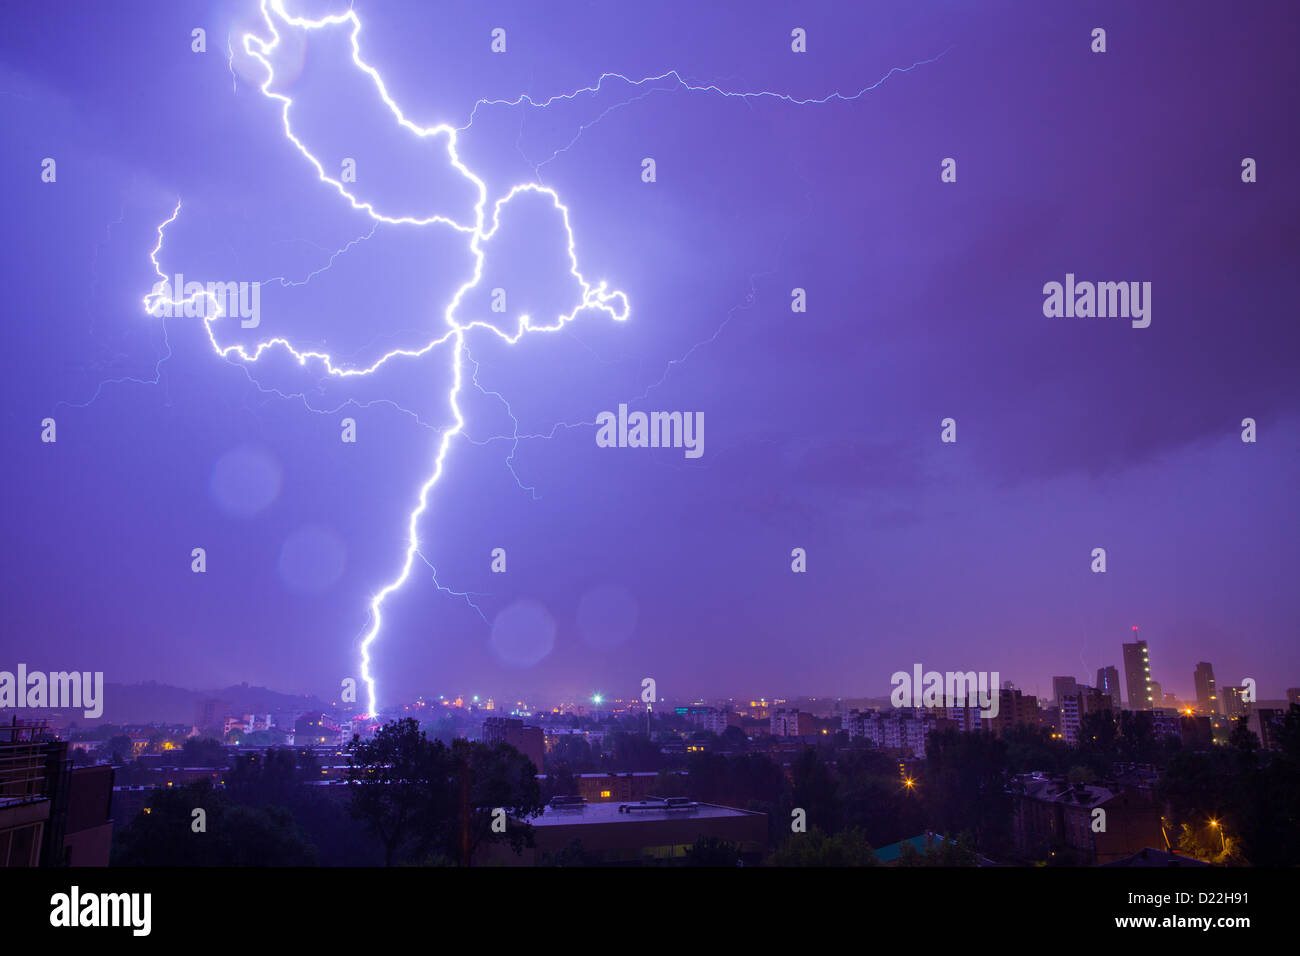 Lightning hits the city on a rainy night - Stock Image